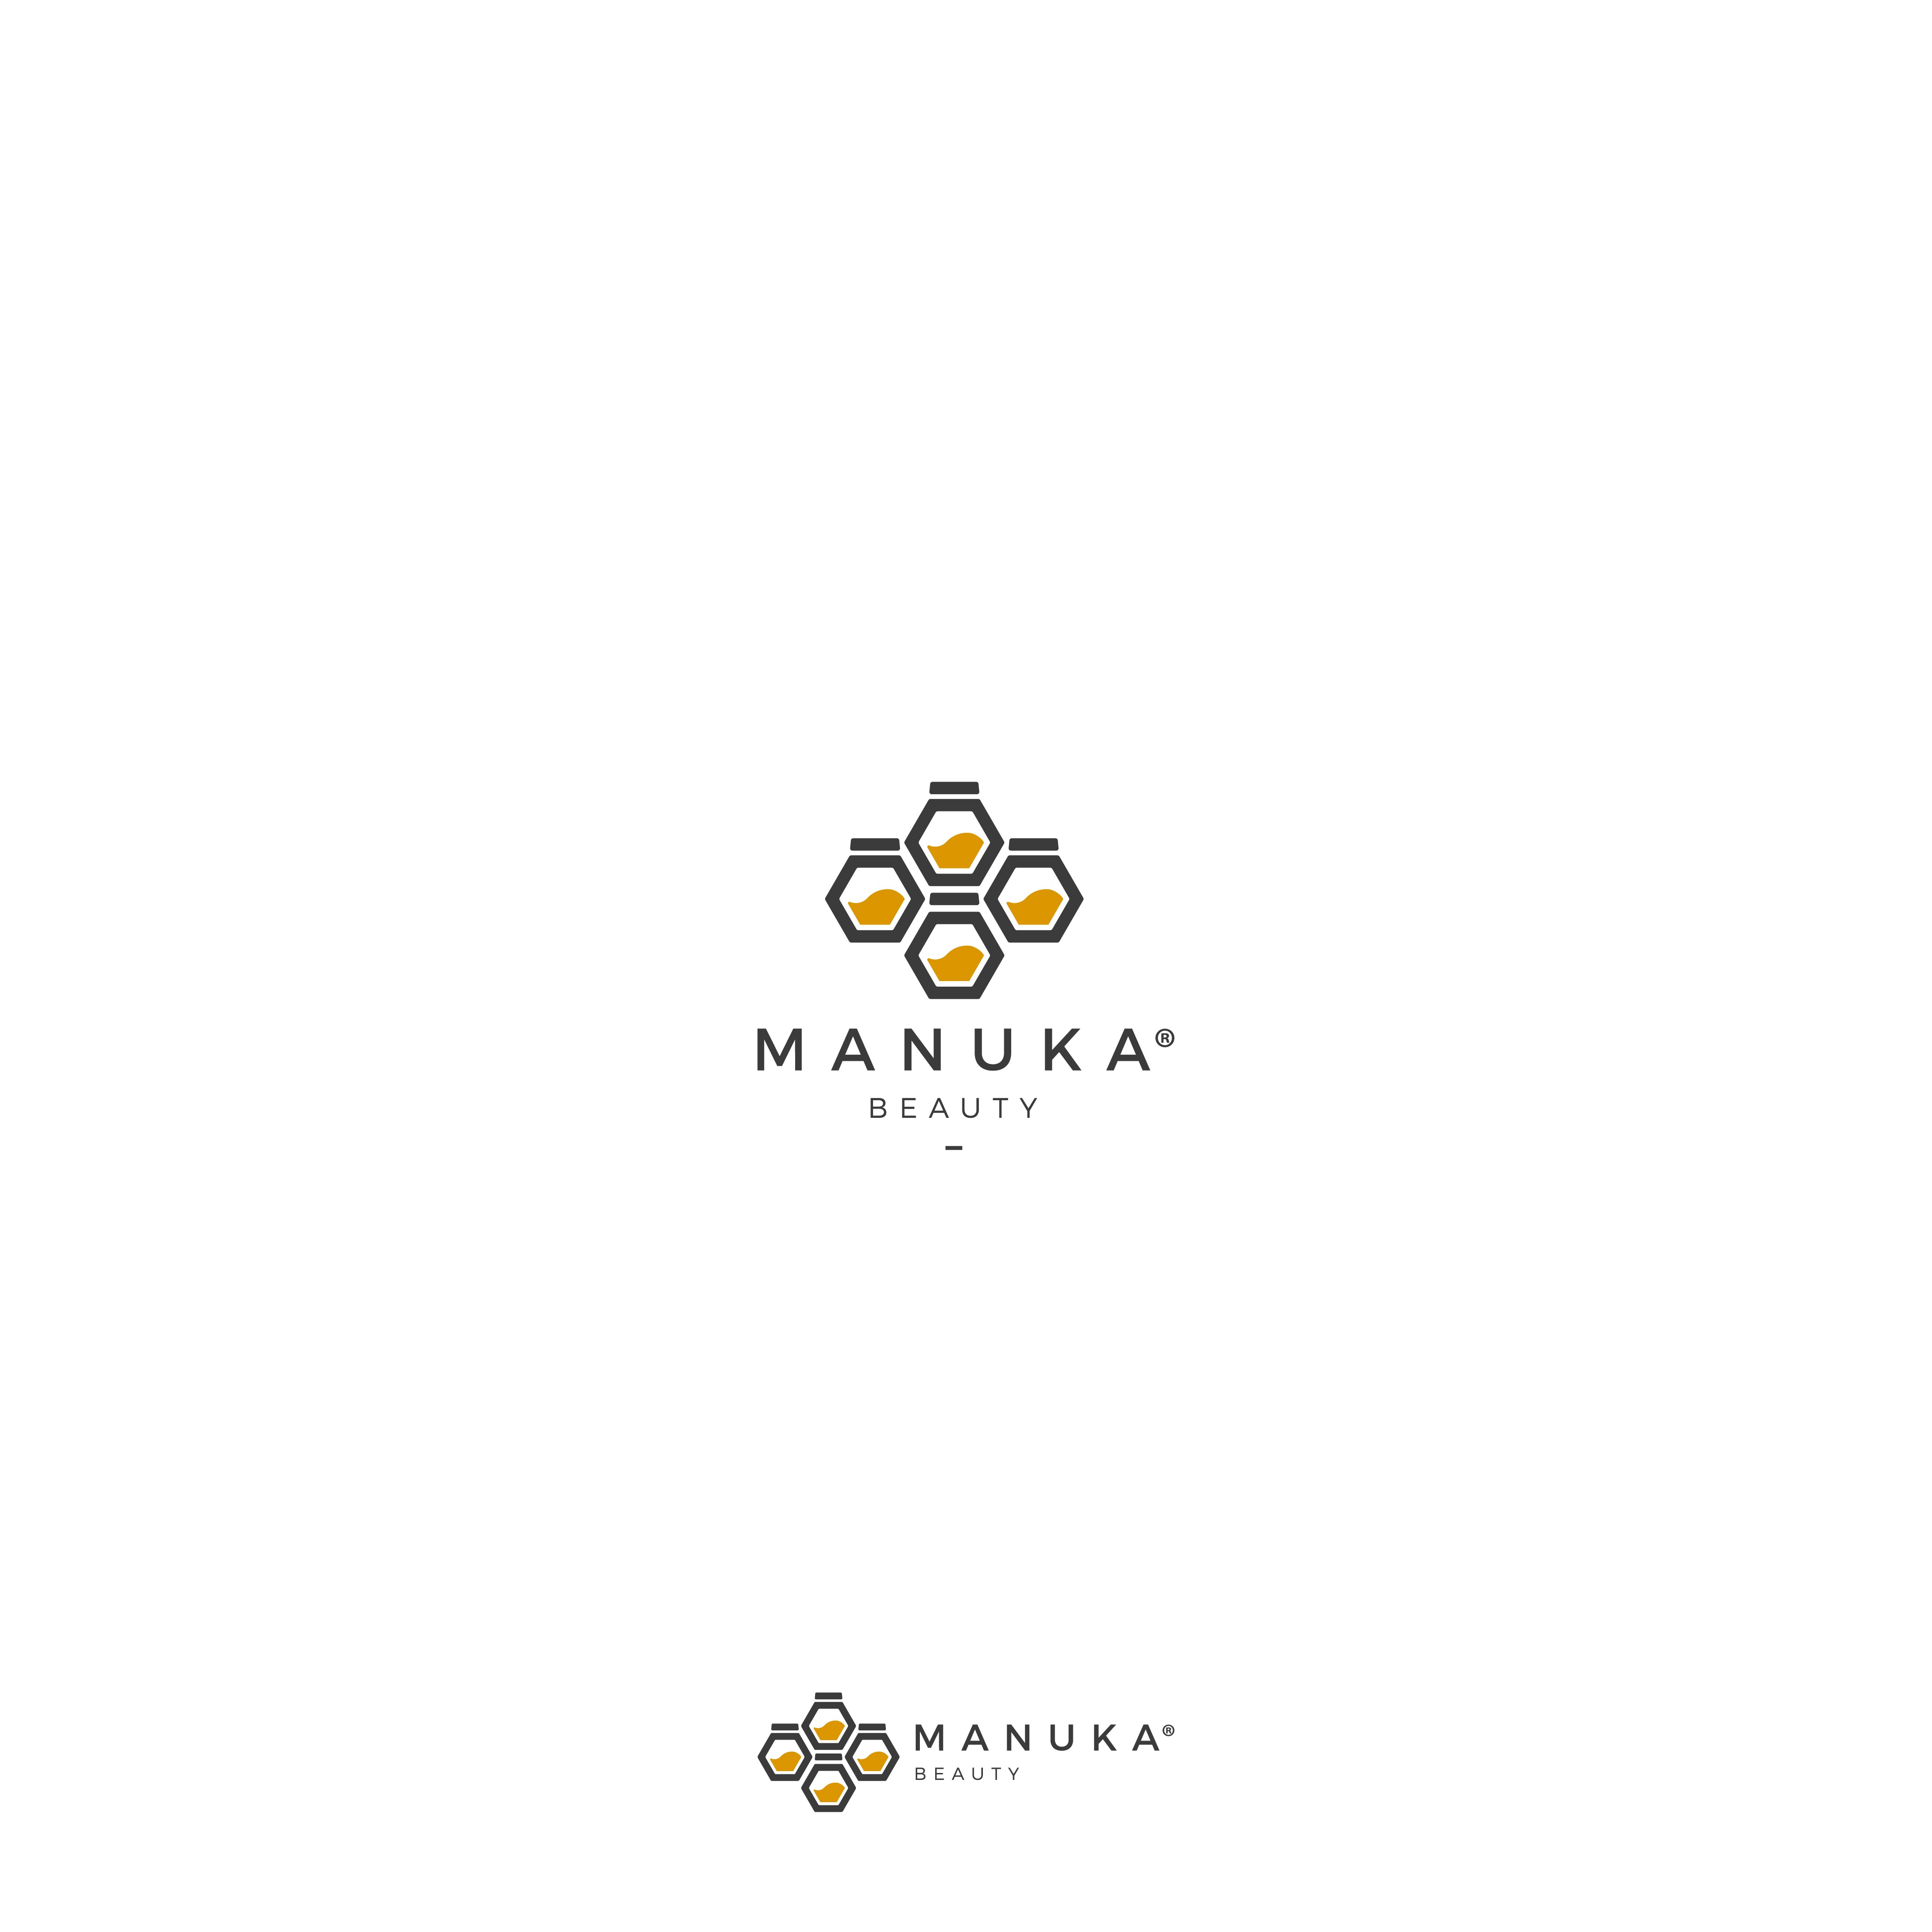 unique LOGO - Natural Beauty & Clinical Product for Mom & Baby (focus: Honey)